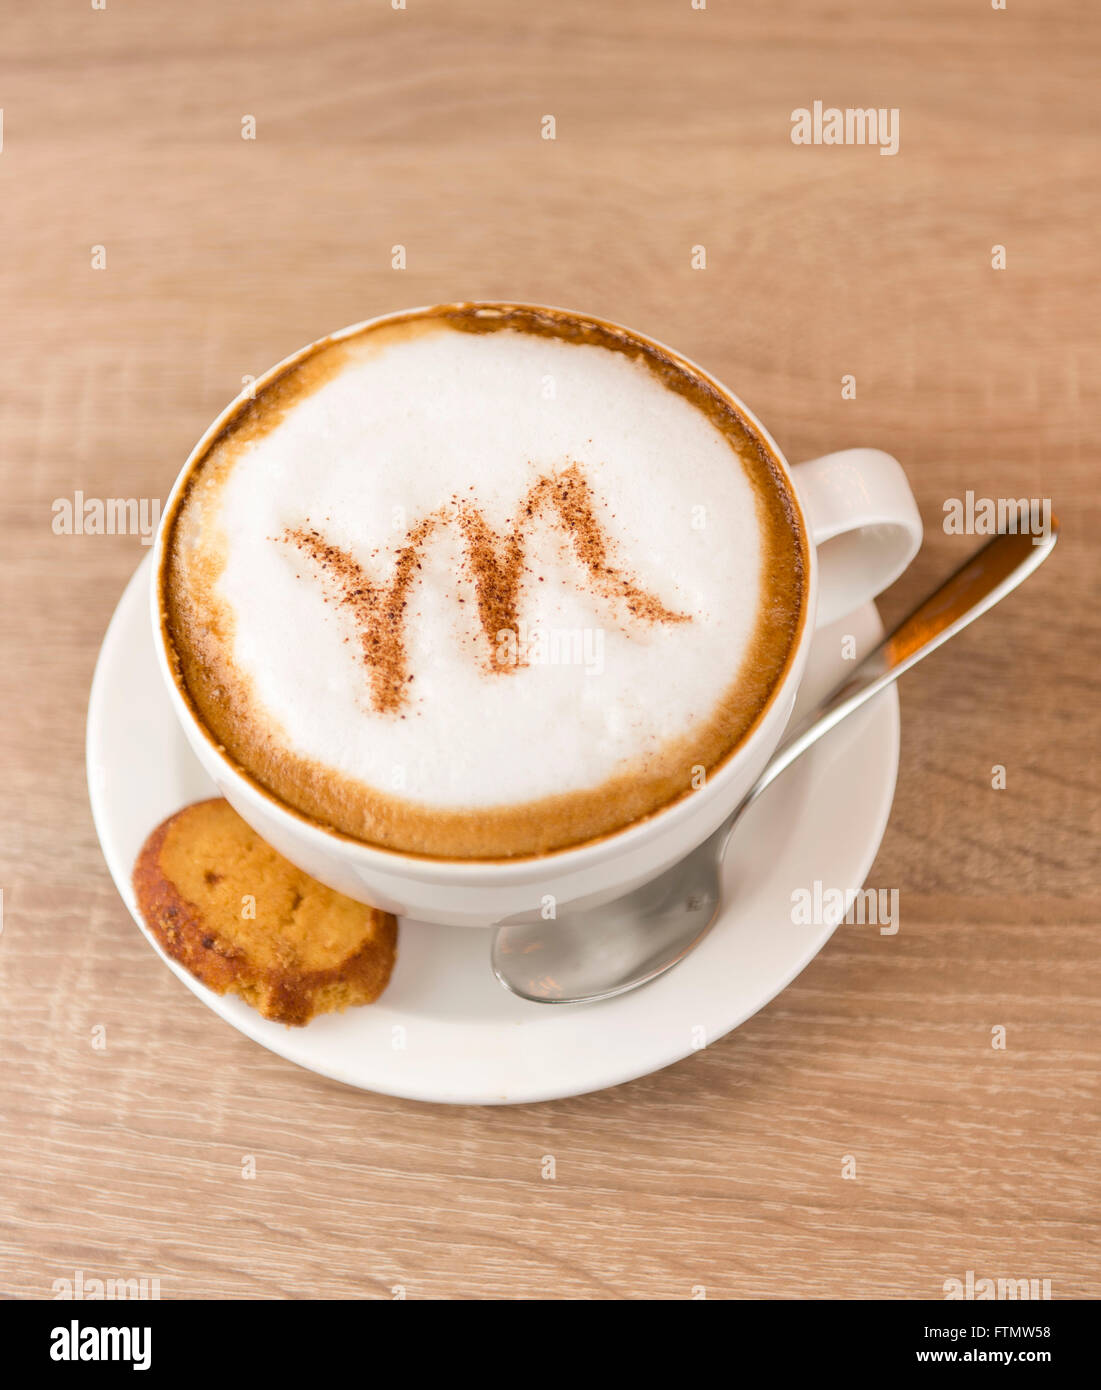 A coffee cappuccino latte with a letter M written into the milk foam. - Stock Image